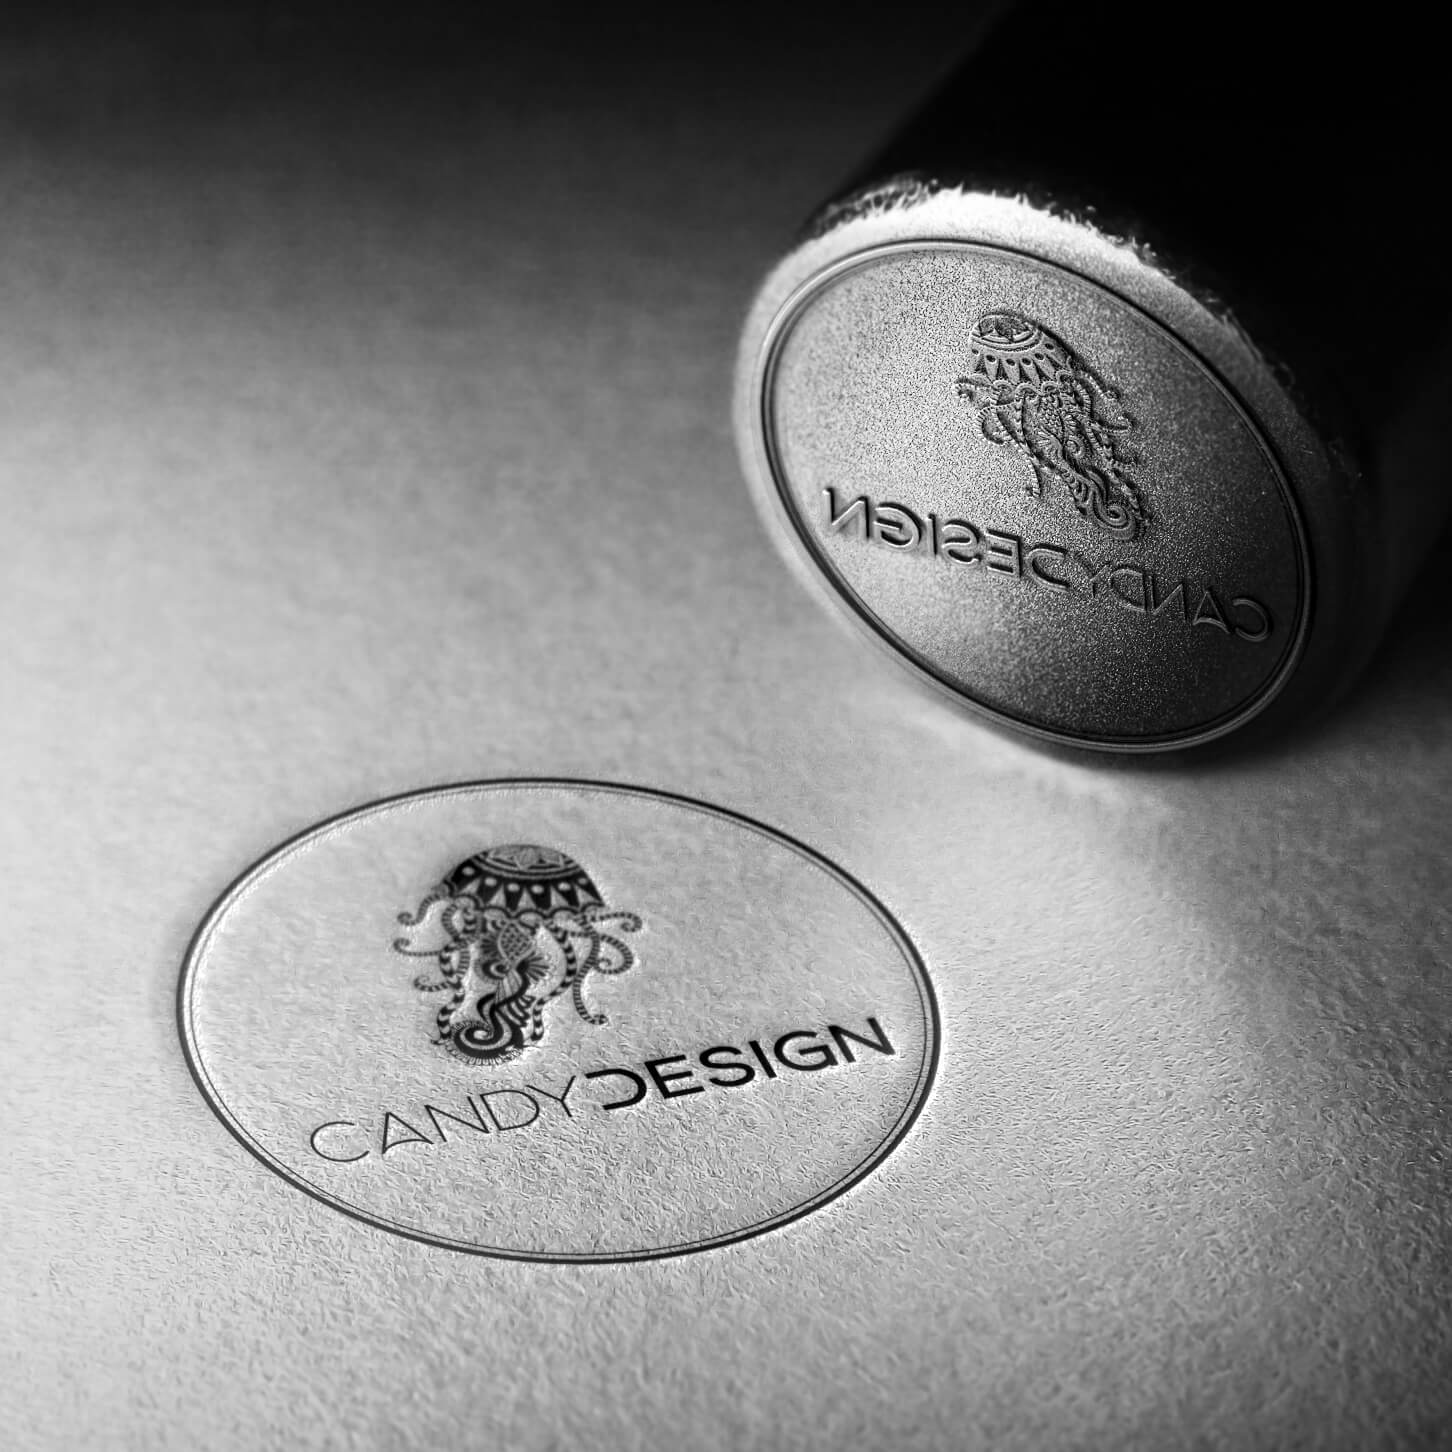 Candydesign branding stamp